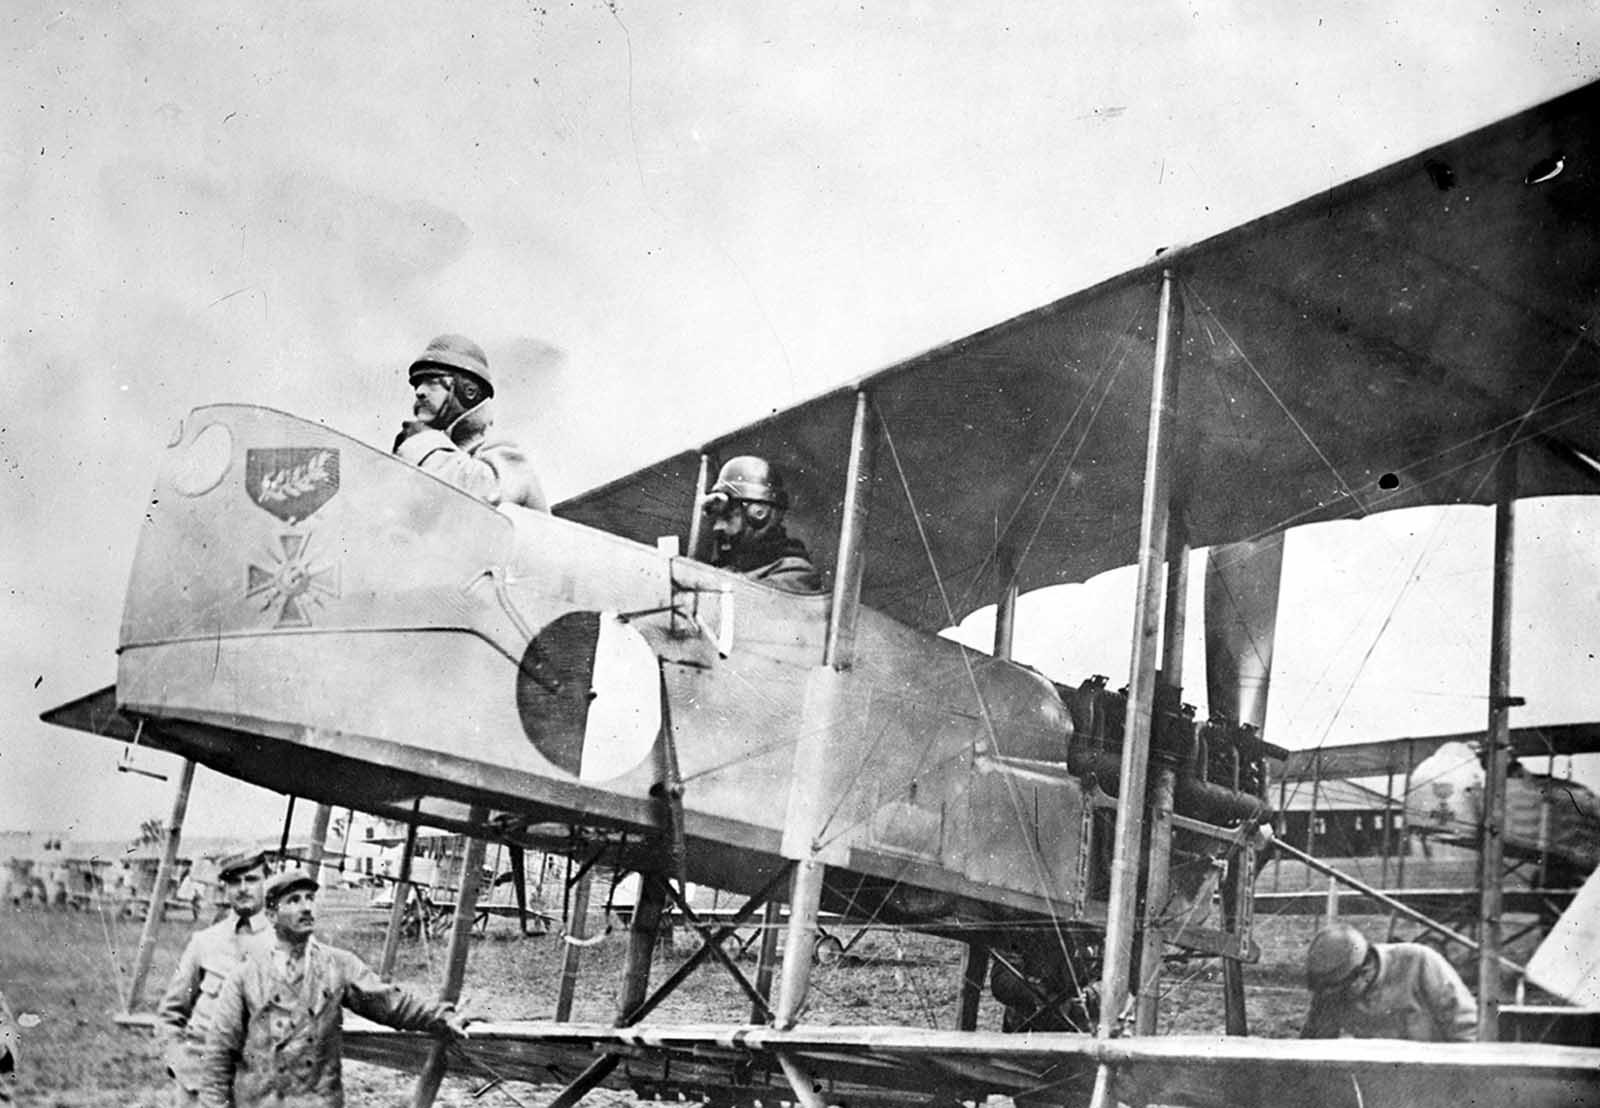 Captain Maurice Happe, rear seat, commander of French squadron MF 29, seated in his Farman MF.11 Shorthorn bomber with a Captain Berthaut. The plane bears the insignia of the first unit, a Croix de Guerre, ca. 1915.